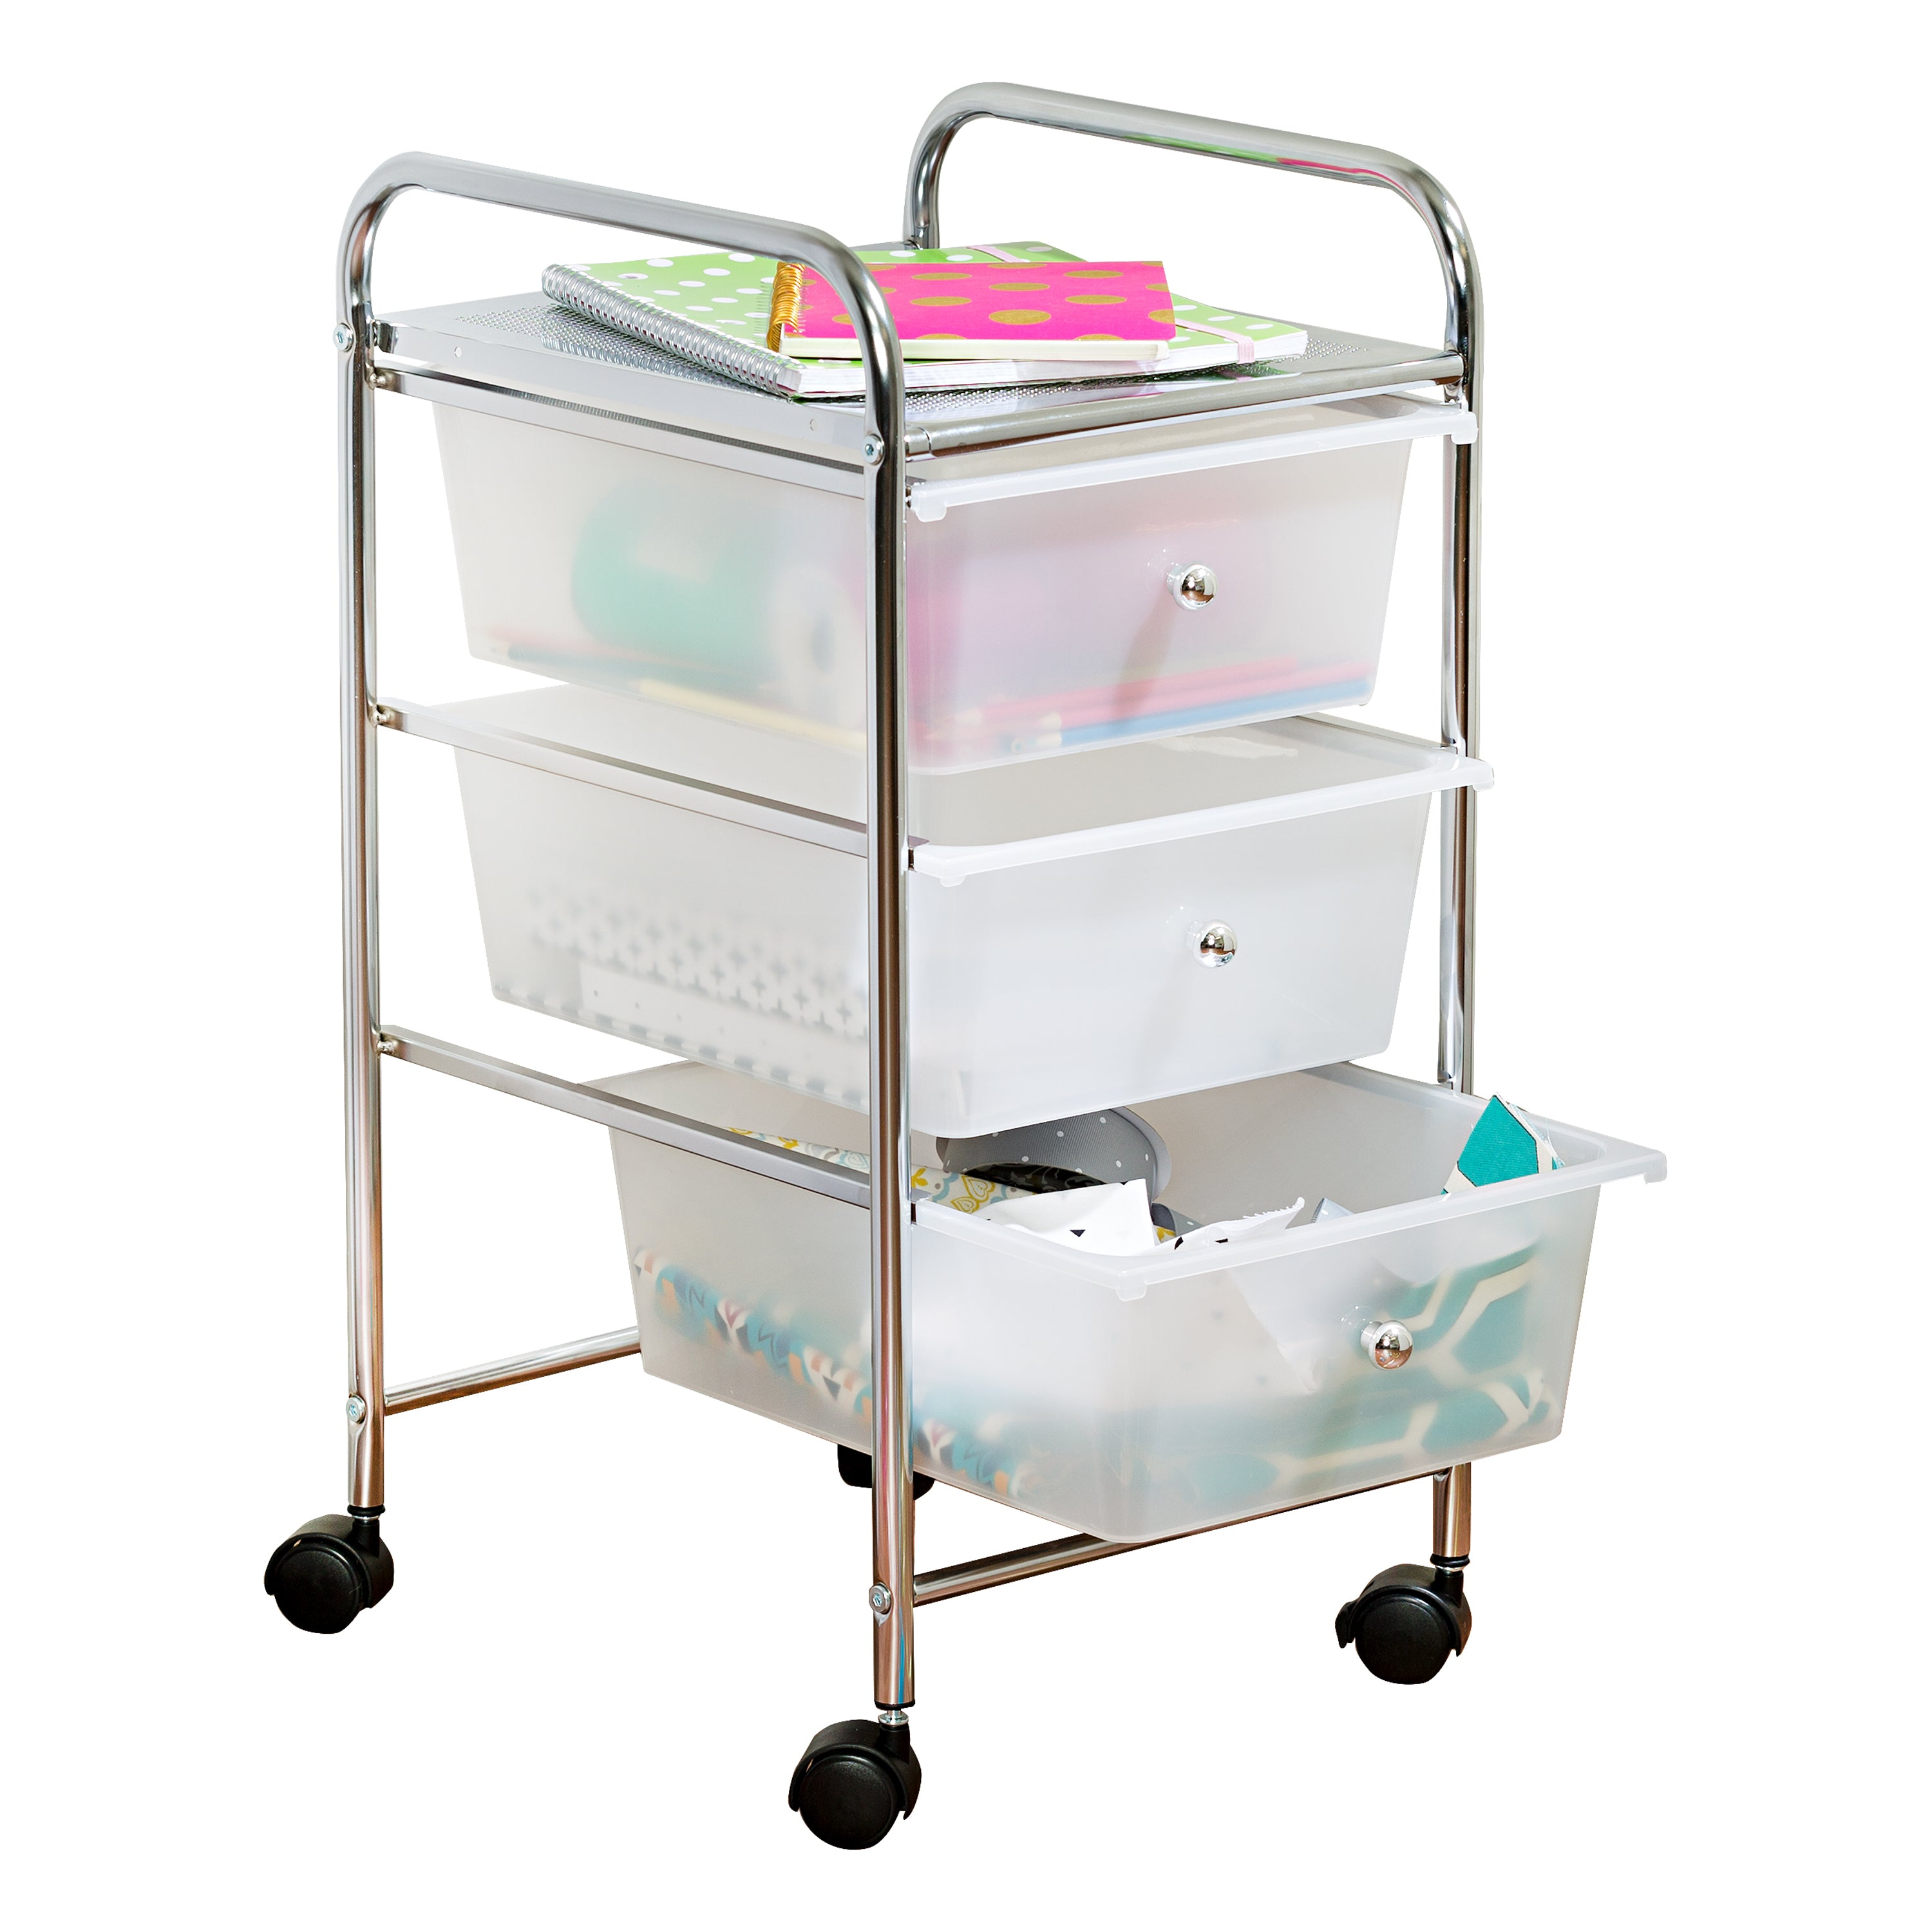 with what color storage to each handy inside s is de see clearly transparent pin our drawers drawer your allowing space you coded clutter organizer cart